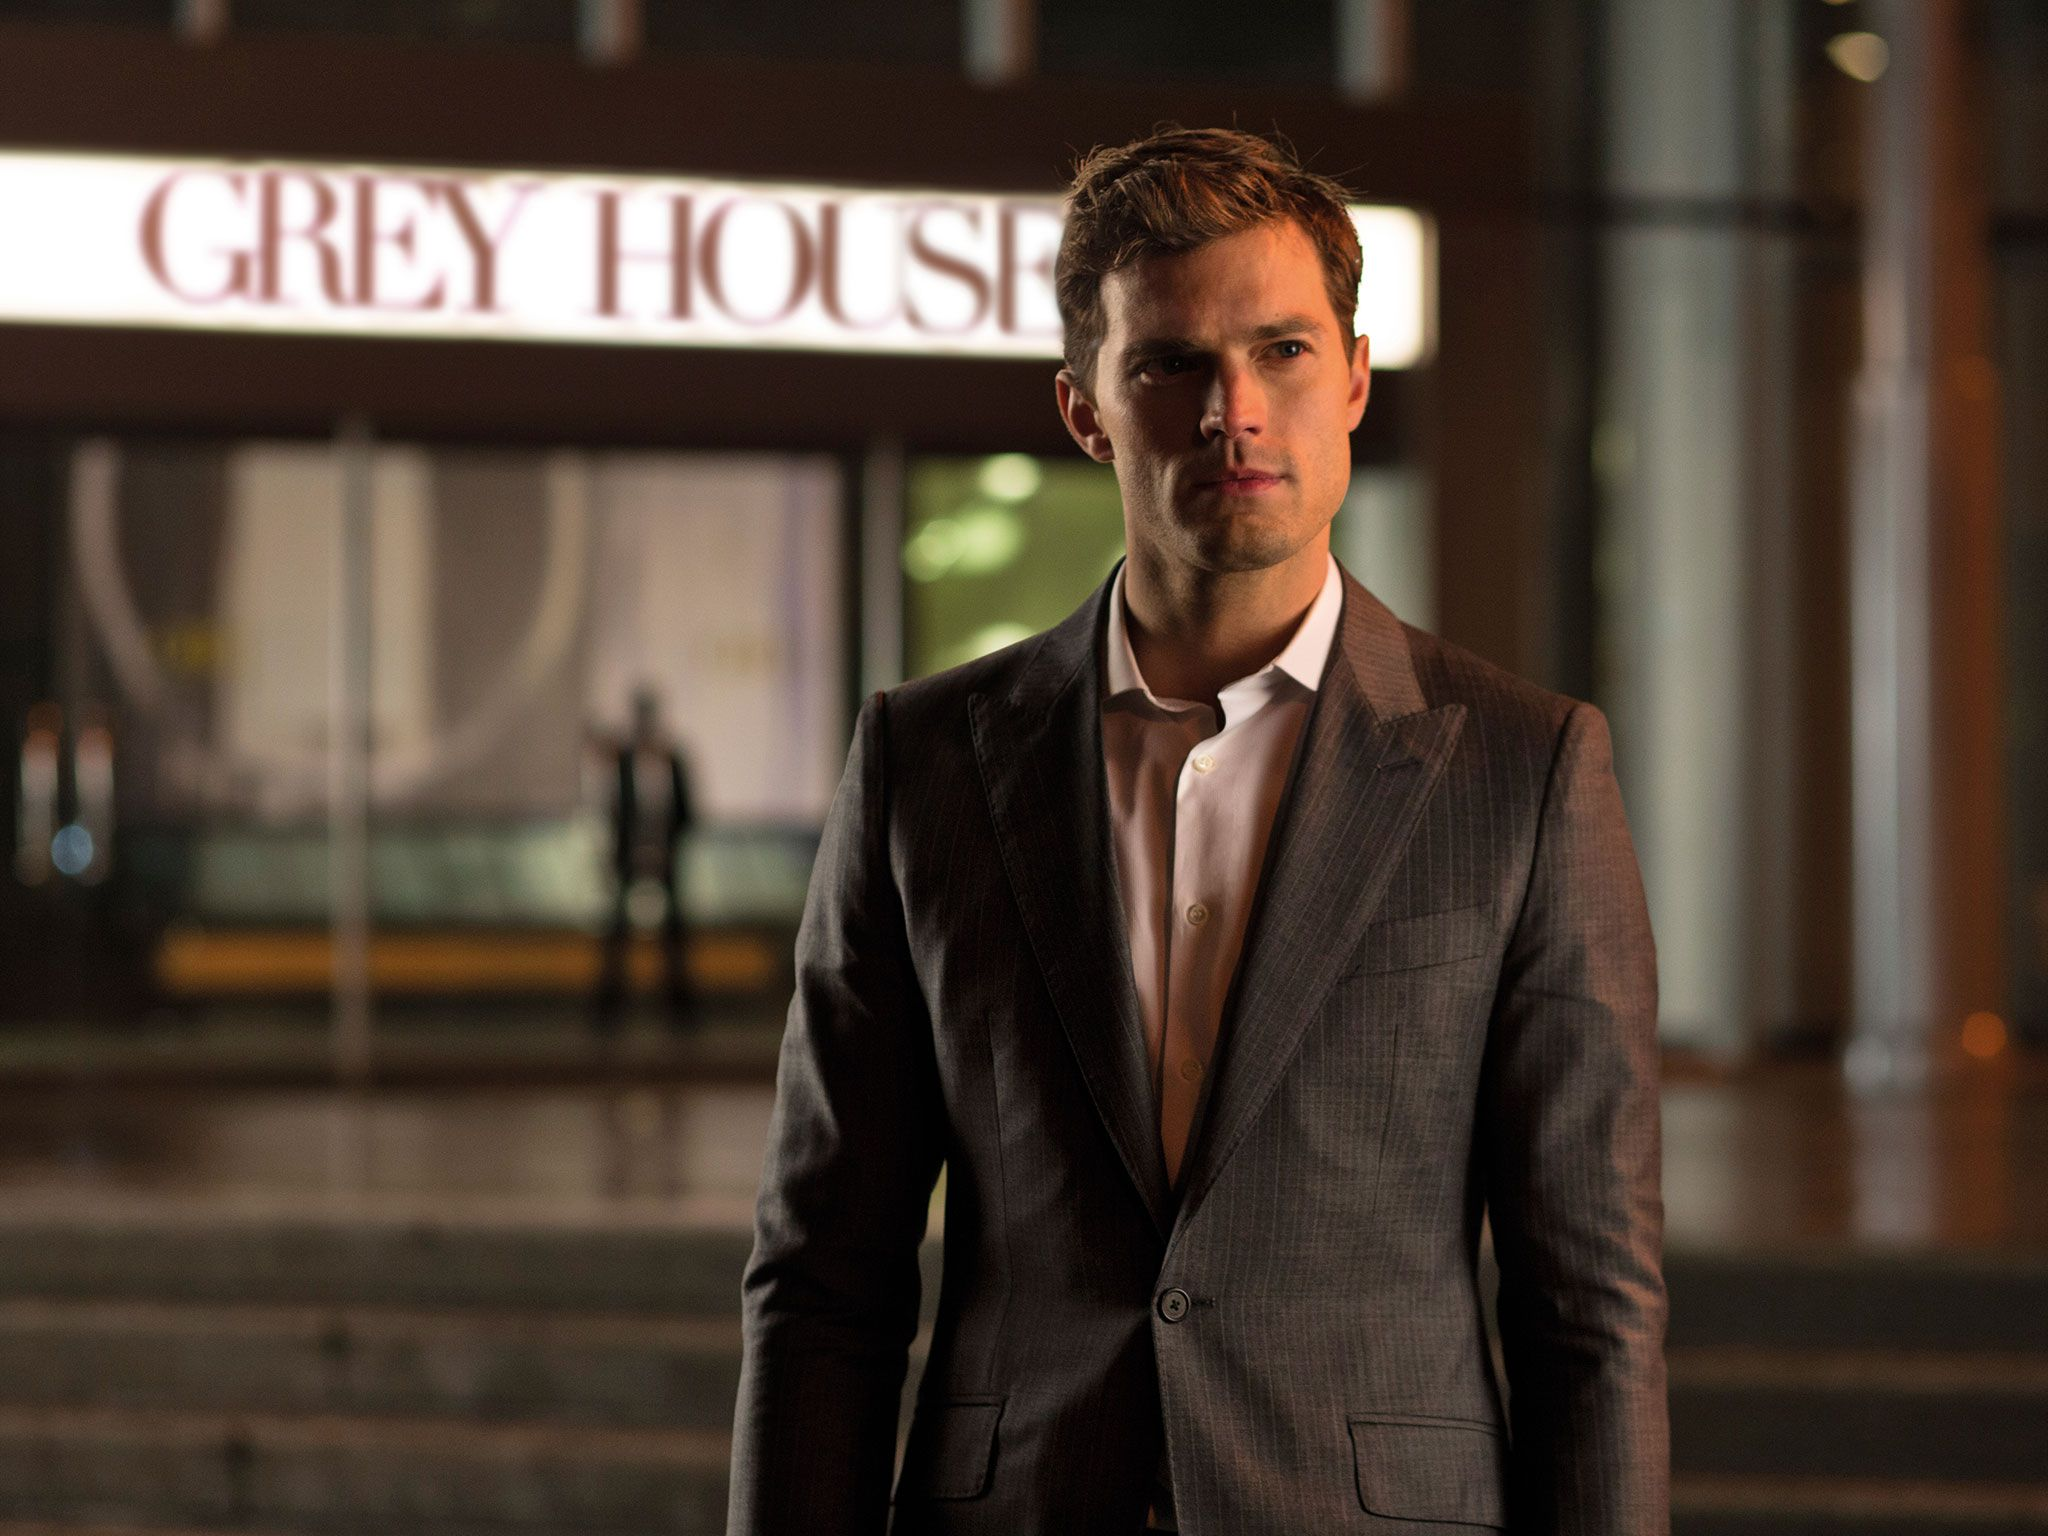 Fifty Shades Star Jamie Dornan Explains Why He Almost Rejected Christian Grey Role